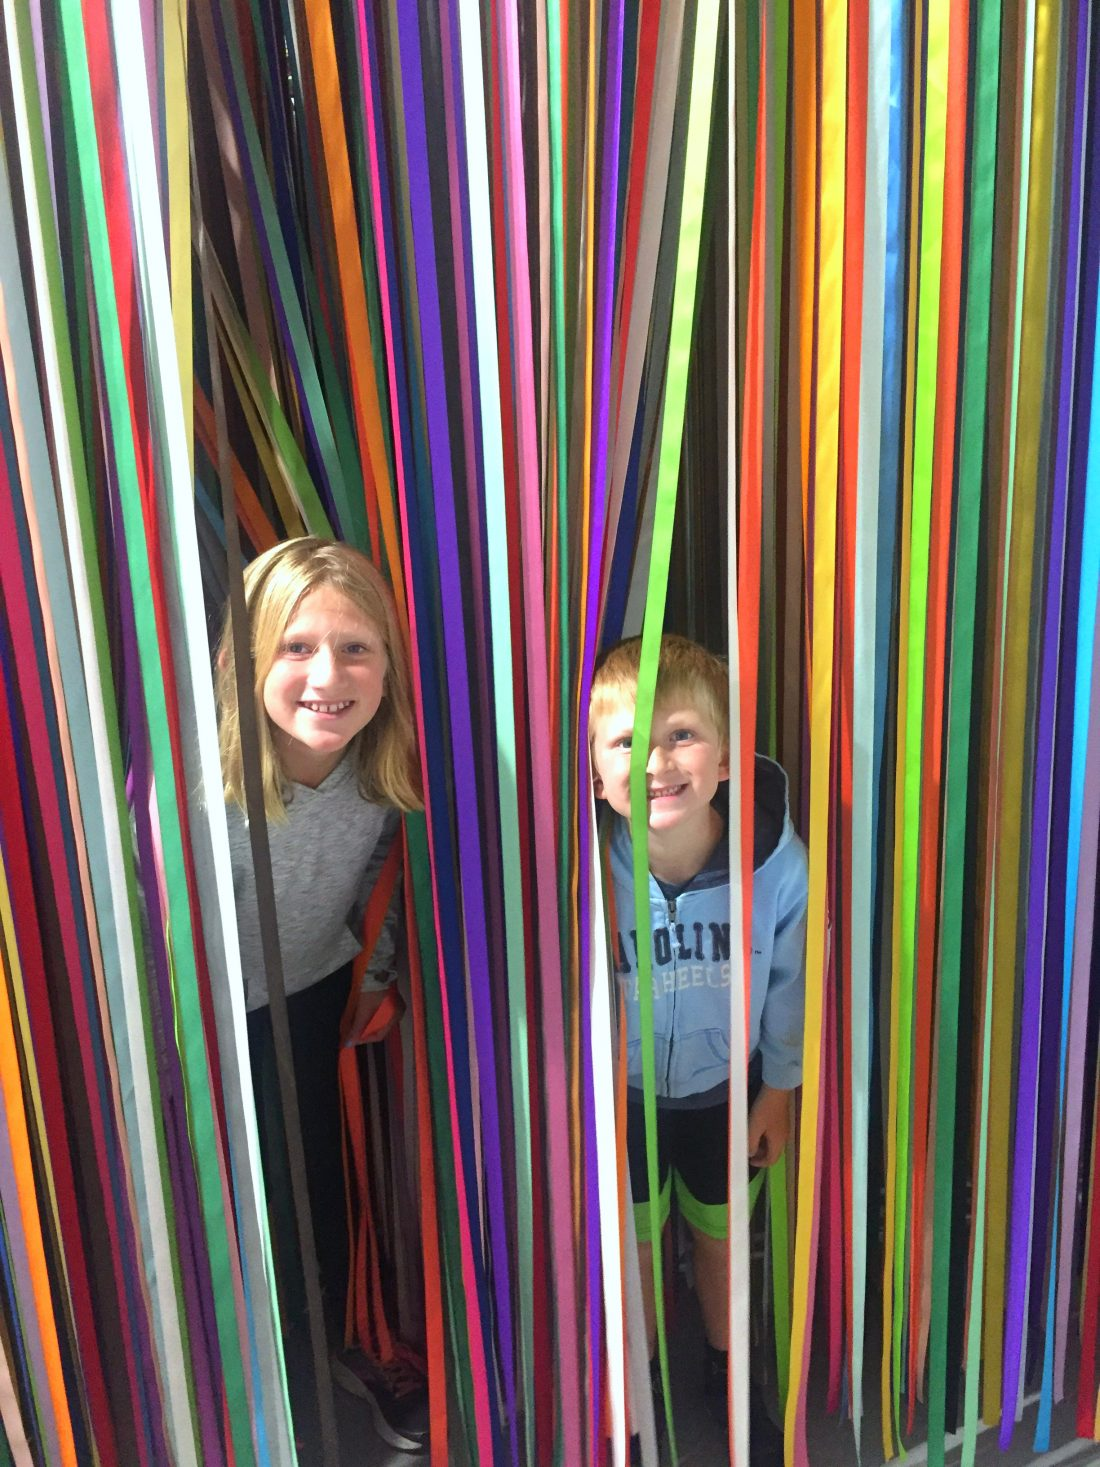 The ribbon room was perfect for hide & seek